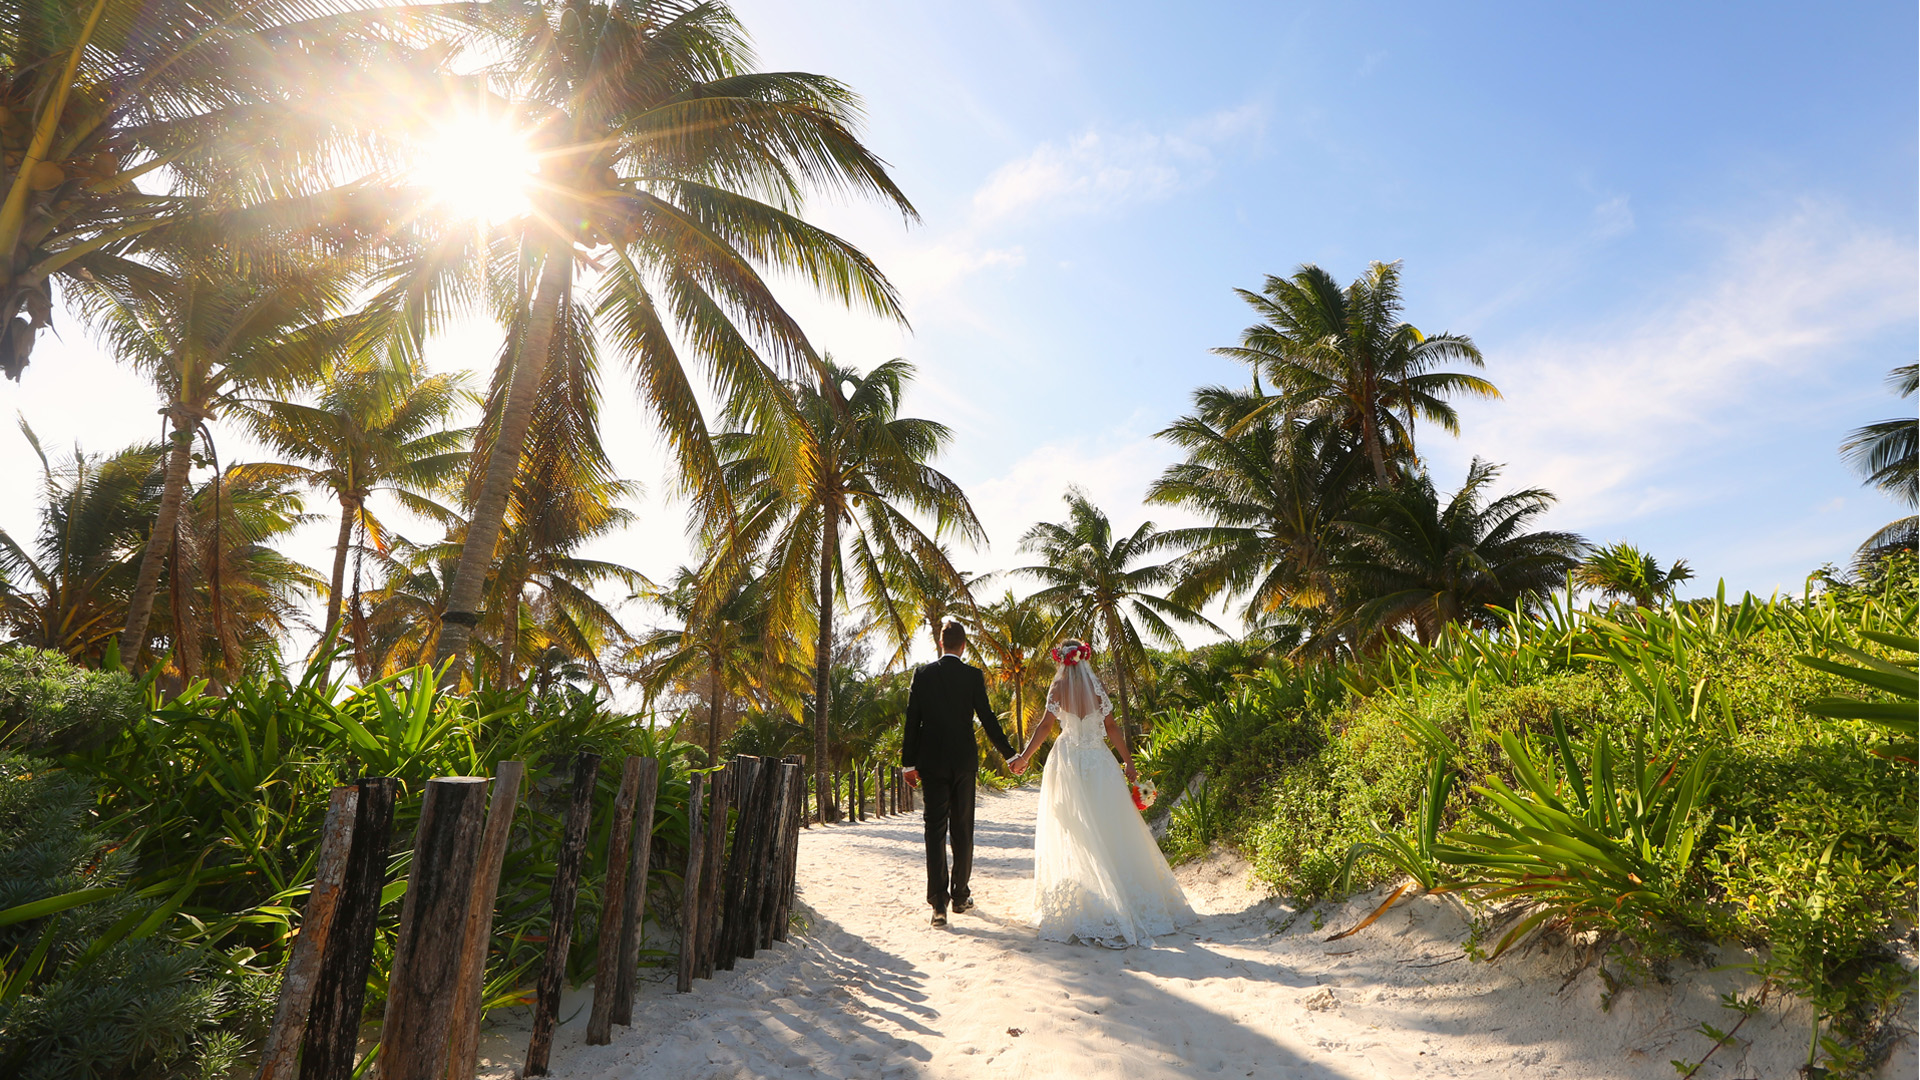 There are pros and cons to getting married abroad. It's not just about hopping on a flight and saying 'I do' on a beach, but it can be worth it. As well as the time of year, monsoon season, local customs and food, there are lots of things to consider when getting married abroad. Planning is key and you may have to book the wedding around 18 months before the event to ensure everything gets planned and people know about it beforehand. You have to think about accessibility for family and friends. Direct flights that are regular and affordable with a short travel time from the airport will give them more incentive to accept the invitation. You would also need to check the details of your marriage ceremony under local law. Each country has different rules when it comes to marriage. In many places, it can be difficult to have a legal ceremony unless you are resident for a number of weeks or months. In this case, the norm would be to have a legal ceremony at home and a symbolic blessing on the day. A local wedding planner who knows the area will be invaluable. From sourcing key suppliers, liaising with vendors in the region and explaining your requirements in the local language, the help will be essential. Choose an established, English-speaking planner who has experience working on weddings in your region and of the style you want to create. This does not mean that you shouldn't visit the venue, florist and bakery yourself. You need to ensure that it's what you want for your big day. Popular Abroad Weddings Europe Lake Garda, Italy Italy's largest lake stretches across three regions in the north of the country, so no wedding abroad in Lake Garda will ever be the same as each other. At its northern end, the mountainous scenery makes a stunning backdrop for your photos with historic castles as the perfect venue. In the south of Lake Garden, the lakeside has an almost Mediterranean feel and relaxed waterfront towns where you can tie the knot. Santorini, Greece Magical sunsets, breathtaking views, towering cliffs and whitewashed villages. This crescent-shaped islands in the Aegean Sea is Santorini, the little paradise on earth which will complete your vows of a lifetime of love and togetherness. Plan your dream wedding on a panoramic terrace on the edge of the Caldera, in one of the famous Santorini wineries or on one of the renowned black volcanic sand beaches. As the sun is setting, the glow of the orange and red in the cliffs will be cherished forever. Caribbean White-sand beaches, Bombay Sapphire waters and an infectious party spirit means that the islands of the Caribbean were made for weddings. Each island has something different to bring the the table. Aruba is home to some of the longest, whitest beaches going, the Dominican Republic livens up evening do's with merengue music and rum cocktails, and Jamaica offers a reggae soundtrack and a laid-back attitude. Cuba does weddings with a Latino-style swing of the hips, combining all the traits of a Caribbean paradise with its iconic capital city, Havana. Then there is of course, St Lucia, where the two of you can stand at the altar with the mighty twin peaks of the Piton Mountains towering behind you. Latin America Whether you fancy golden sands and golden sunsets, or beaches whiter than your wedding cake, Latin America delivers. Opt for Mexico and you'll have a choice between the east and west coasts. In the east, it's all white sands, Tiffany-blue waters and A-list-worthy hotels. While on the west coast you can expect sunset ceremonies overlooking caramel-coloured sands, with the Sierra Madre mountains as a backdrop. Further south, Costa Rica has the same gold sands and sunset vistas, but with the added dose of adventure.